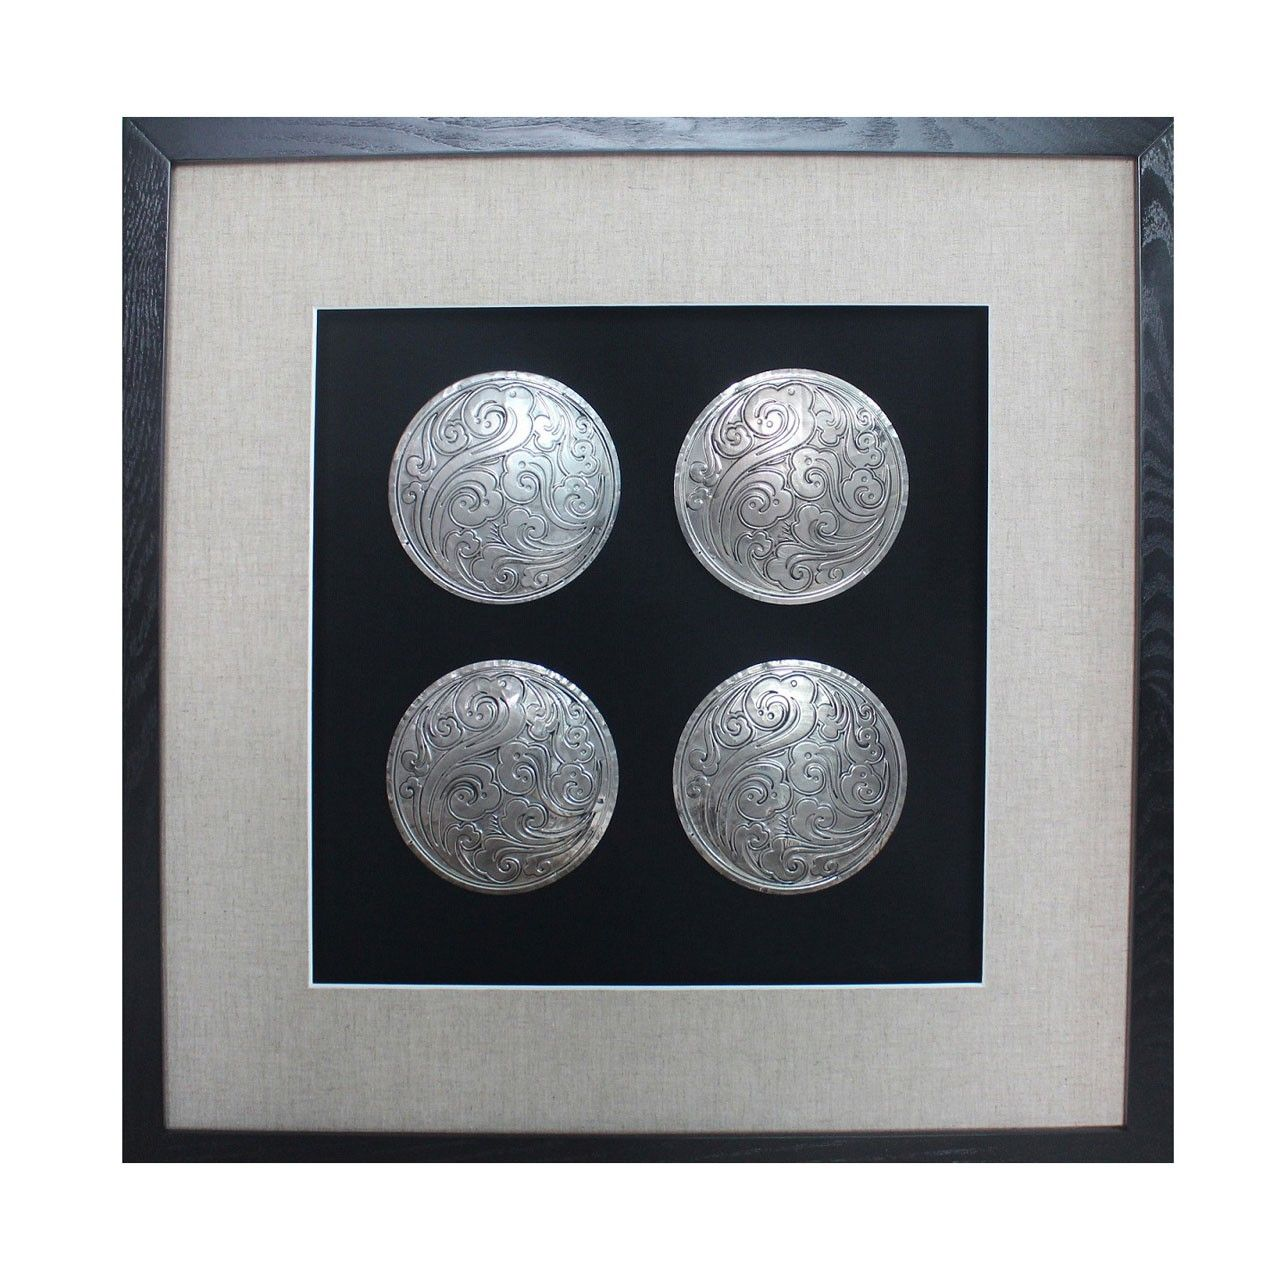 Mayfair home furniture are pleased to offer framed disc wall art silver as part of our premier houseware range